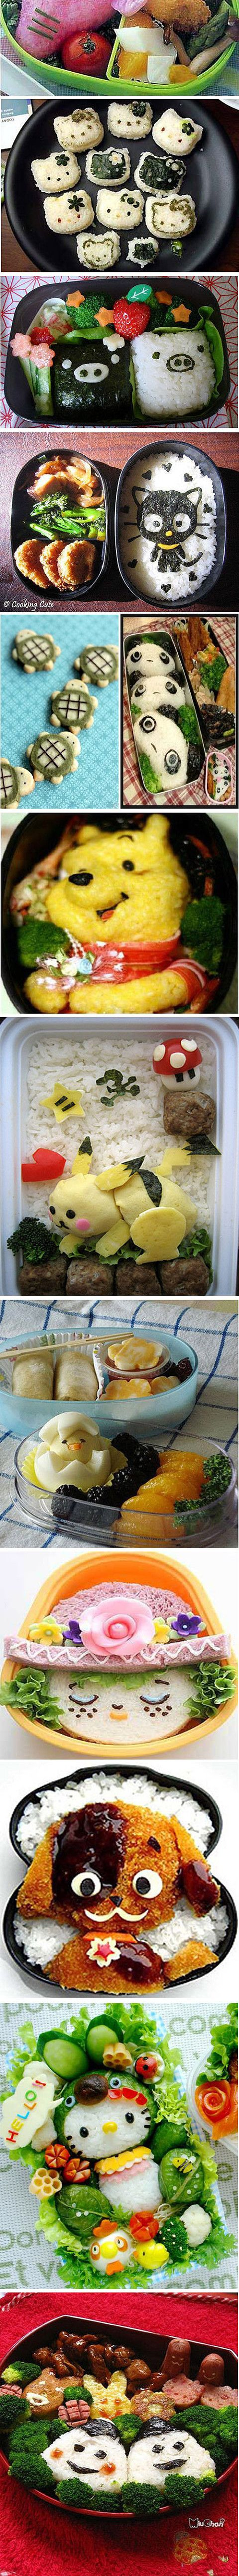 Would my future husband mind me packing his lunch like that.... or I just wait for every April Fool's day. hehehe